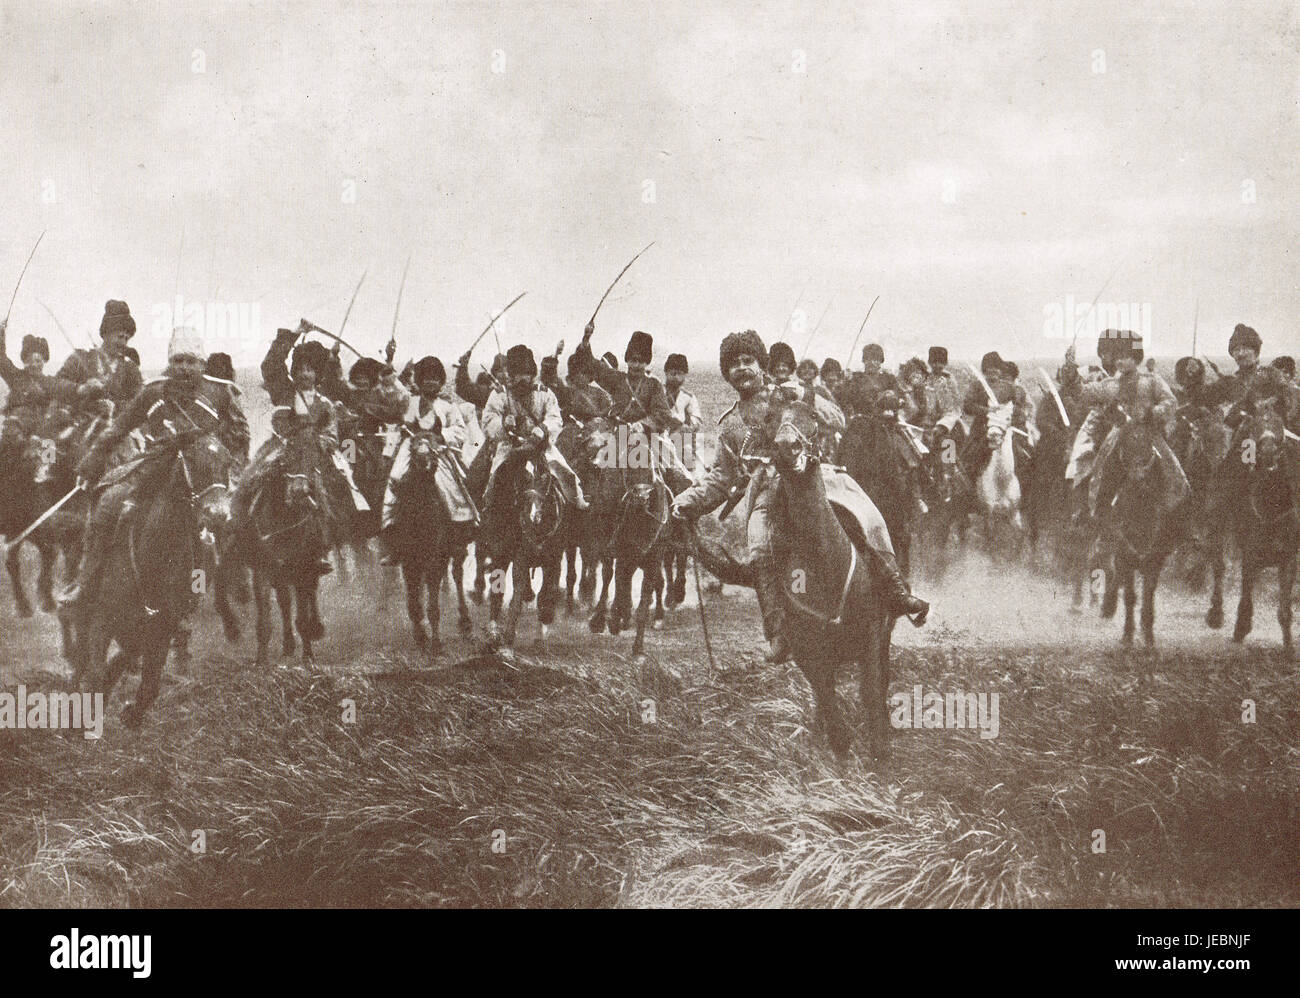 Russian Cossacks charge, WW 1, 1914 Stock Photo